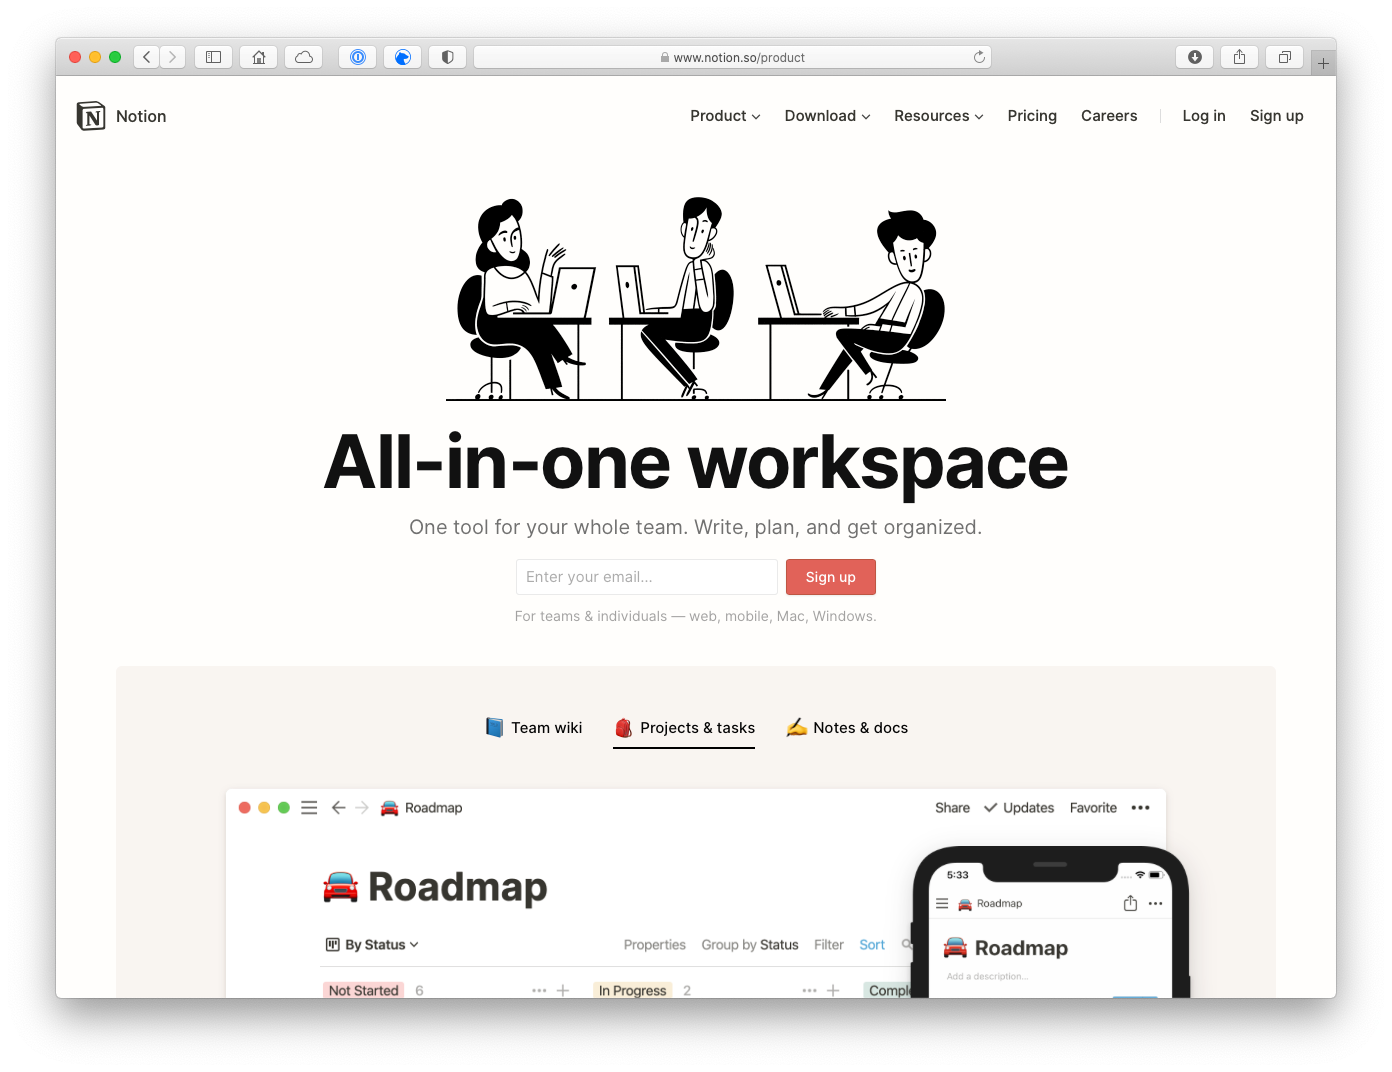 Notion is an all-in-one workspace that's